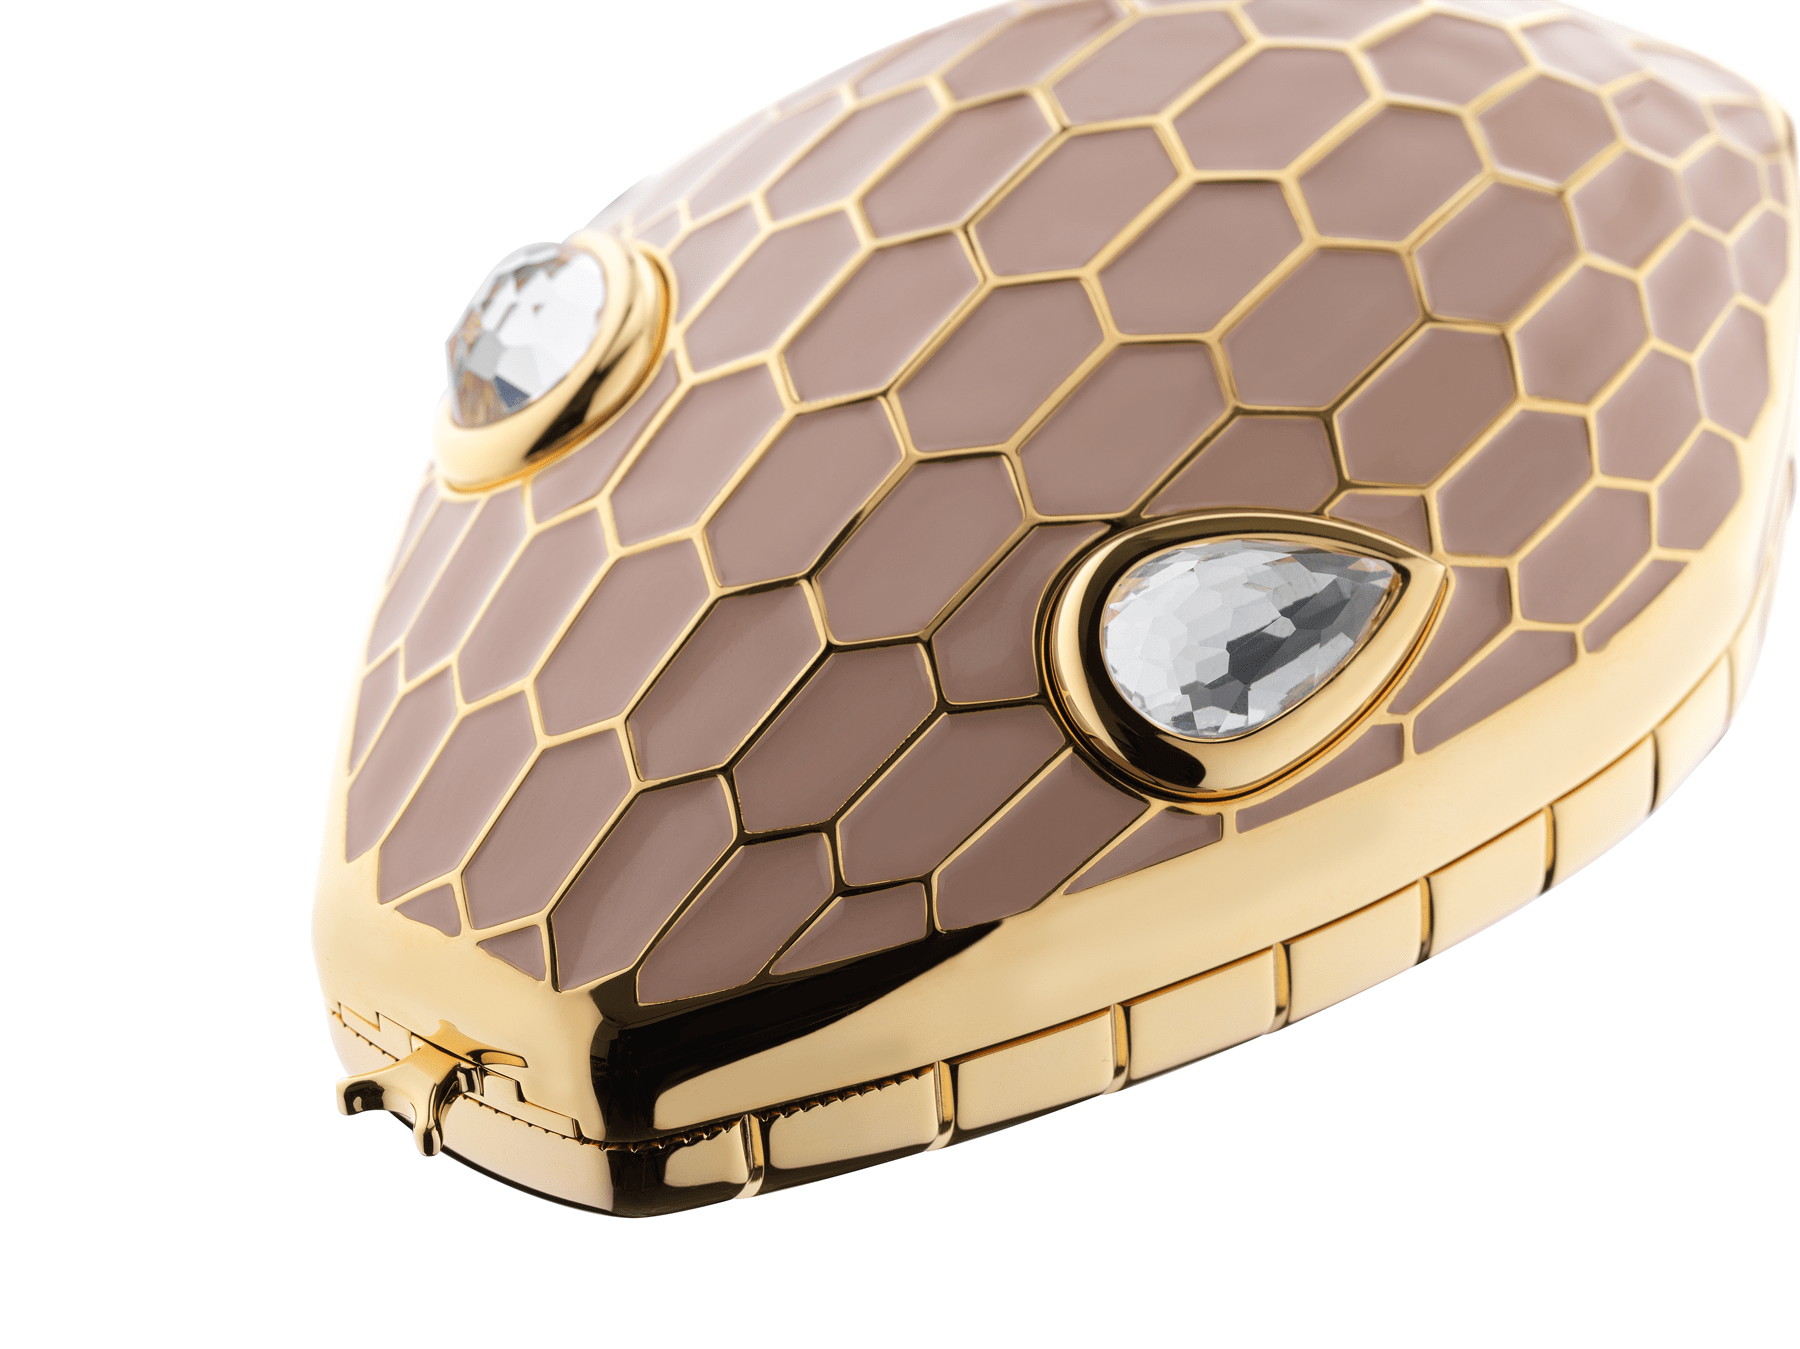 """""""Mary Katrantzou x Bvlgari"""" minaudière in light gold-plated brass with multicolour enamel scales, finished with seductive crystal eyes. Special Edition. MK-1153 image 4"""